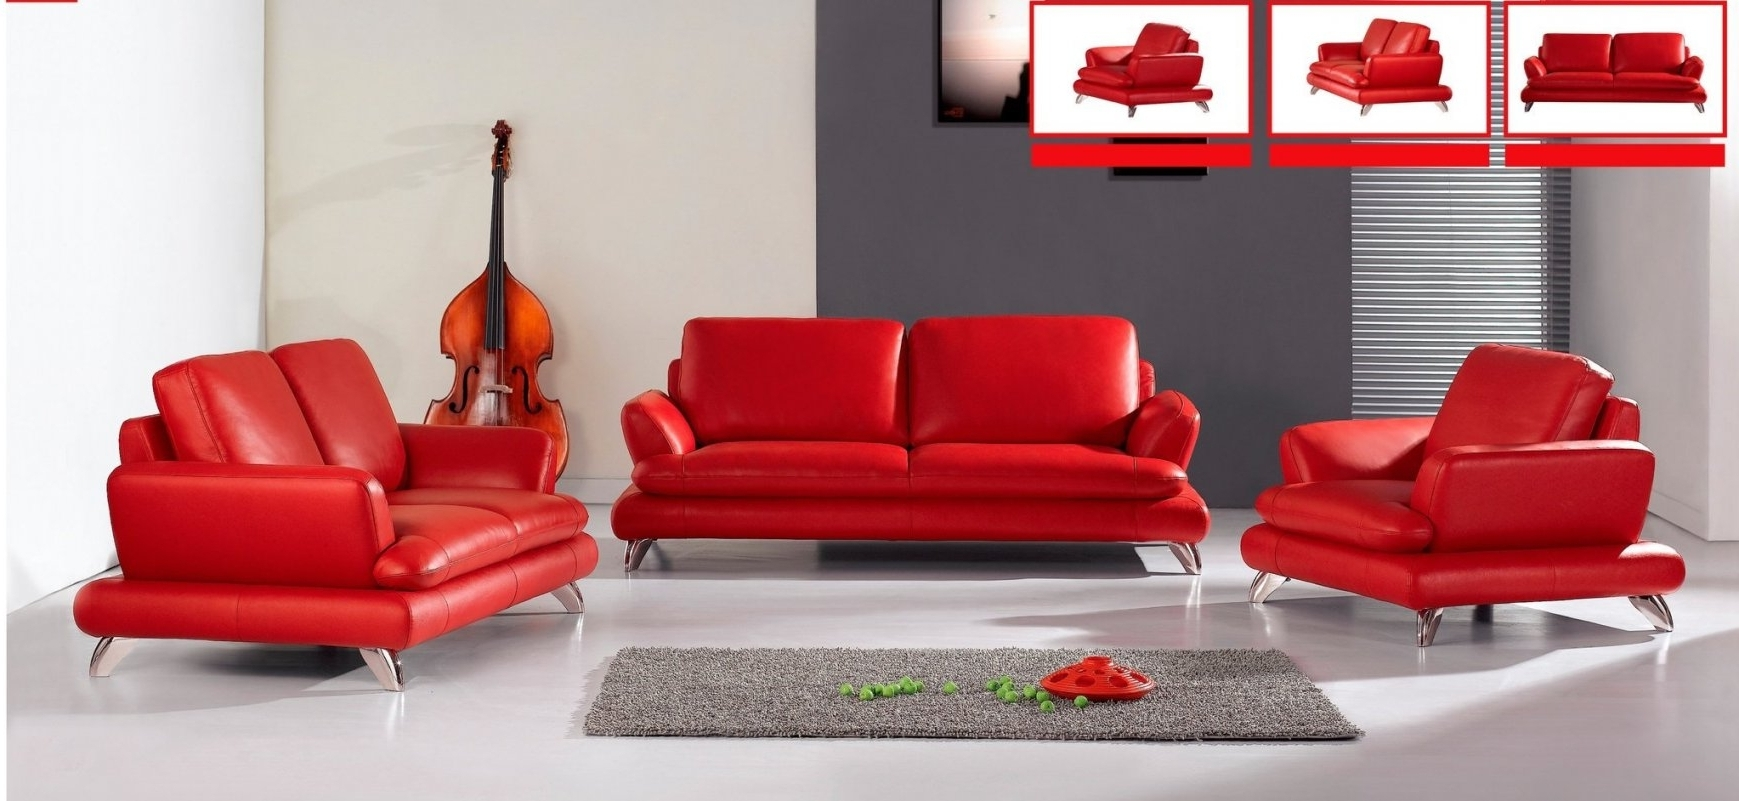 Red Leather Couches Within Most Recent Contemporary Red Leather Sofa 66 For Living Room Sofa Regarding (View 15 of 20)